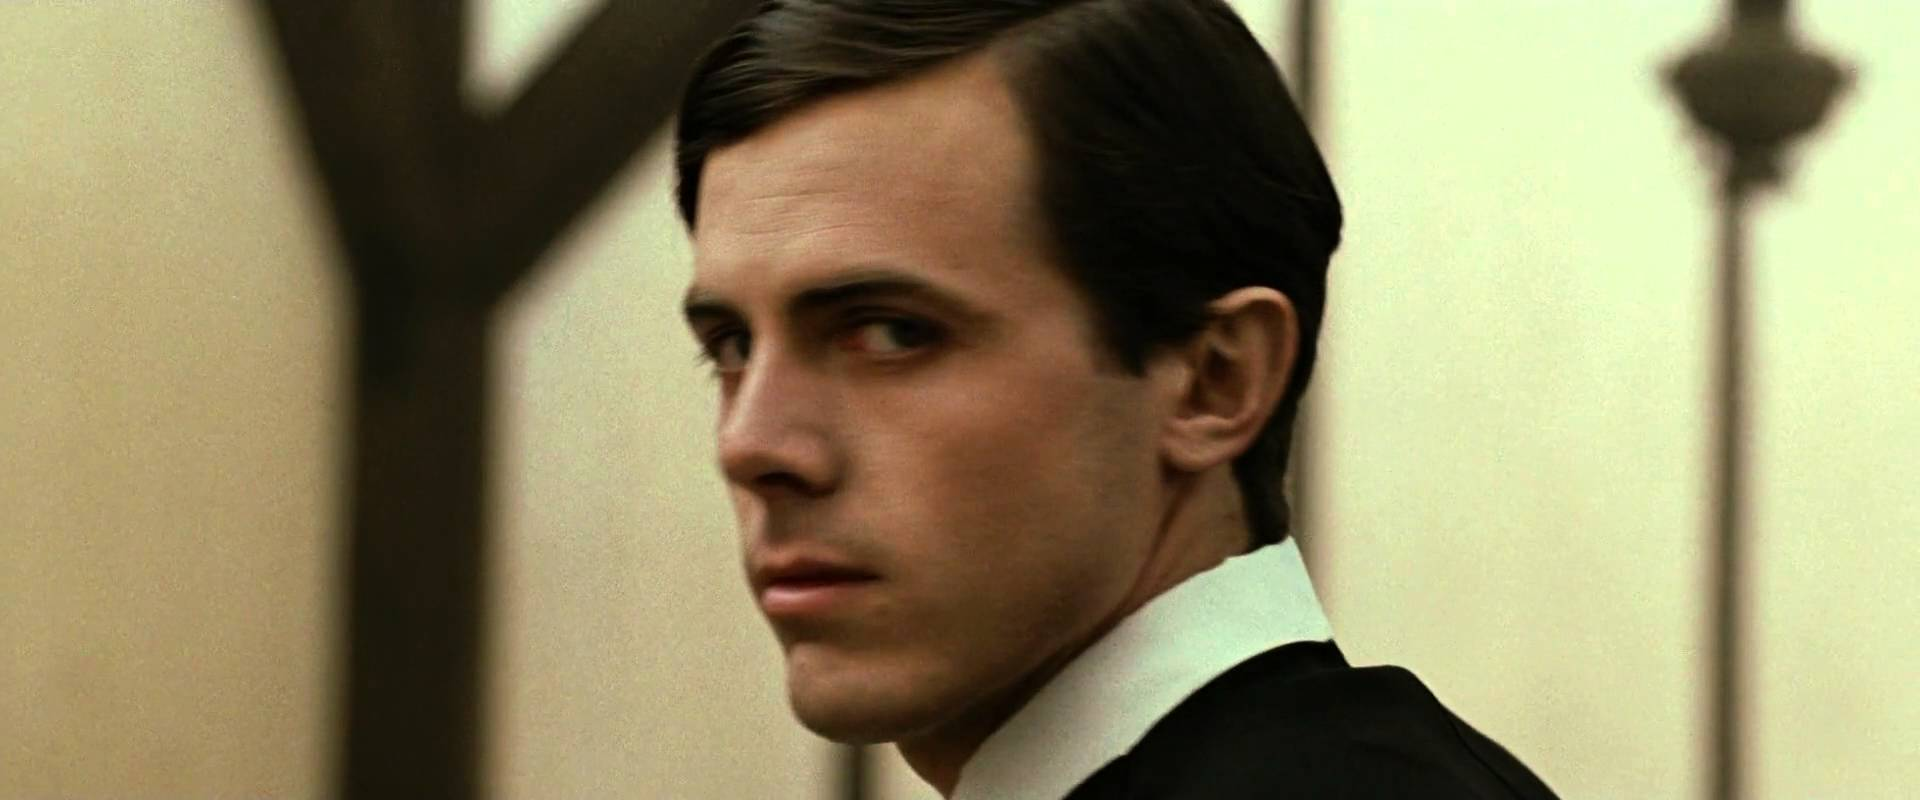 the-assassination-of-jesse-james-by-the-coward-robert-ford-ending